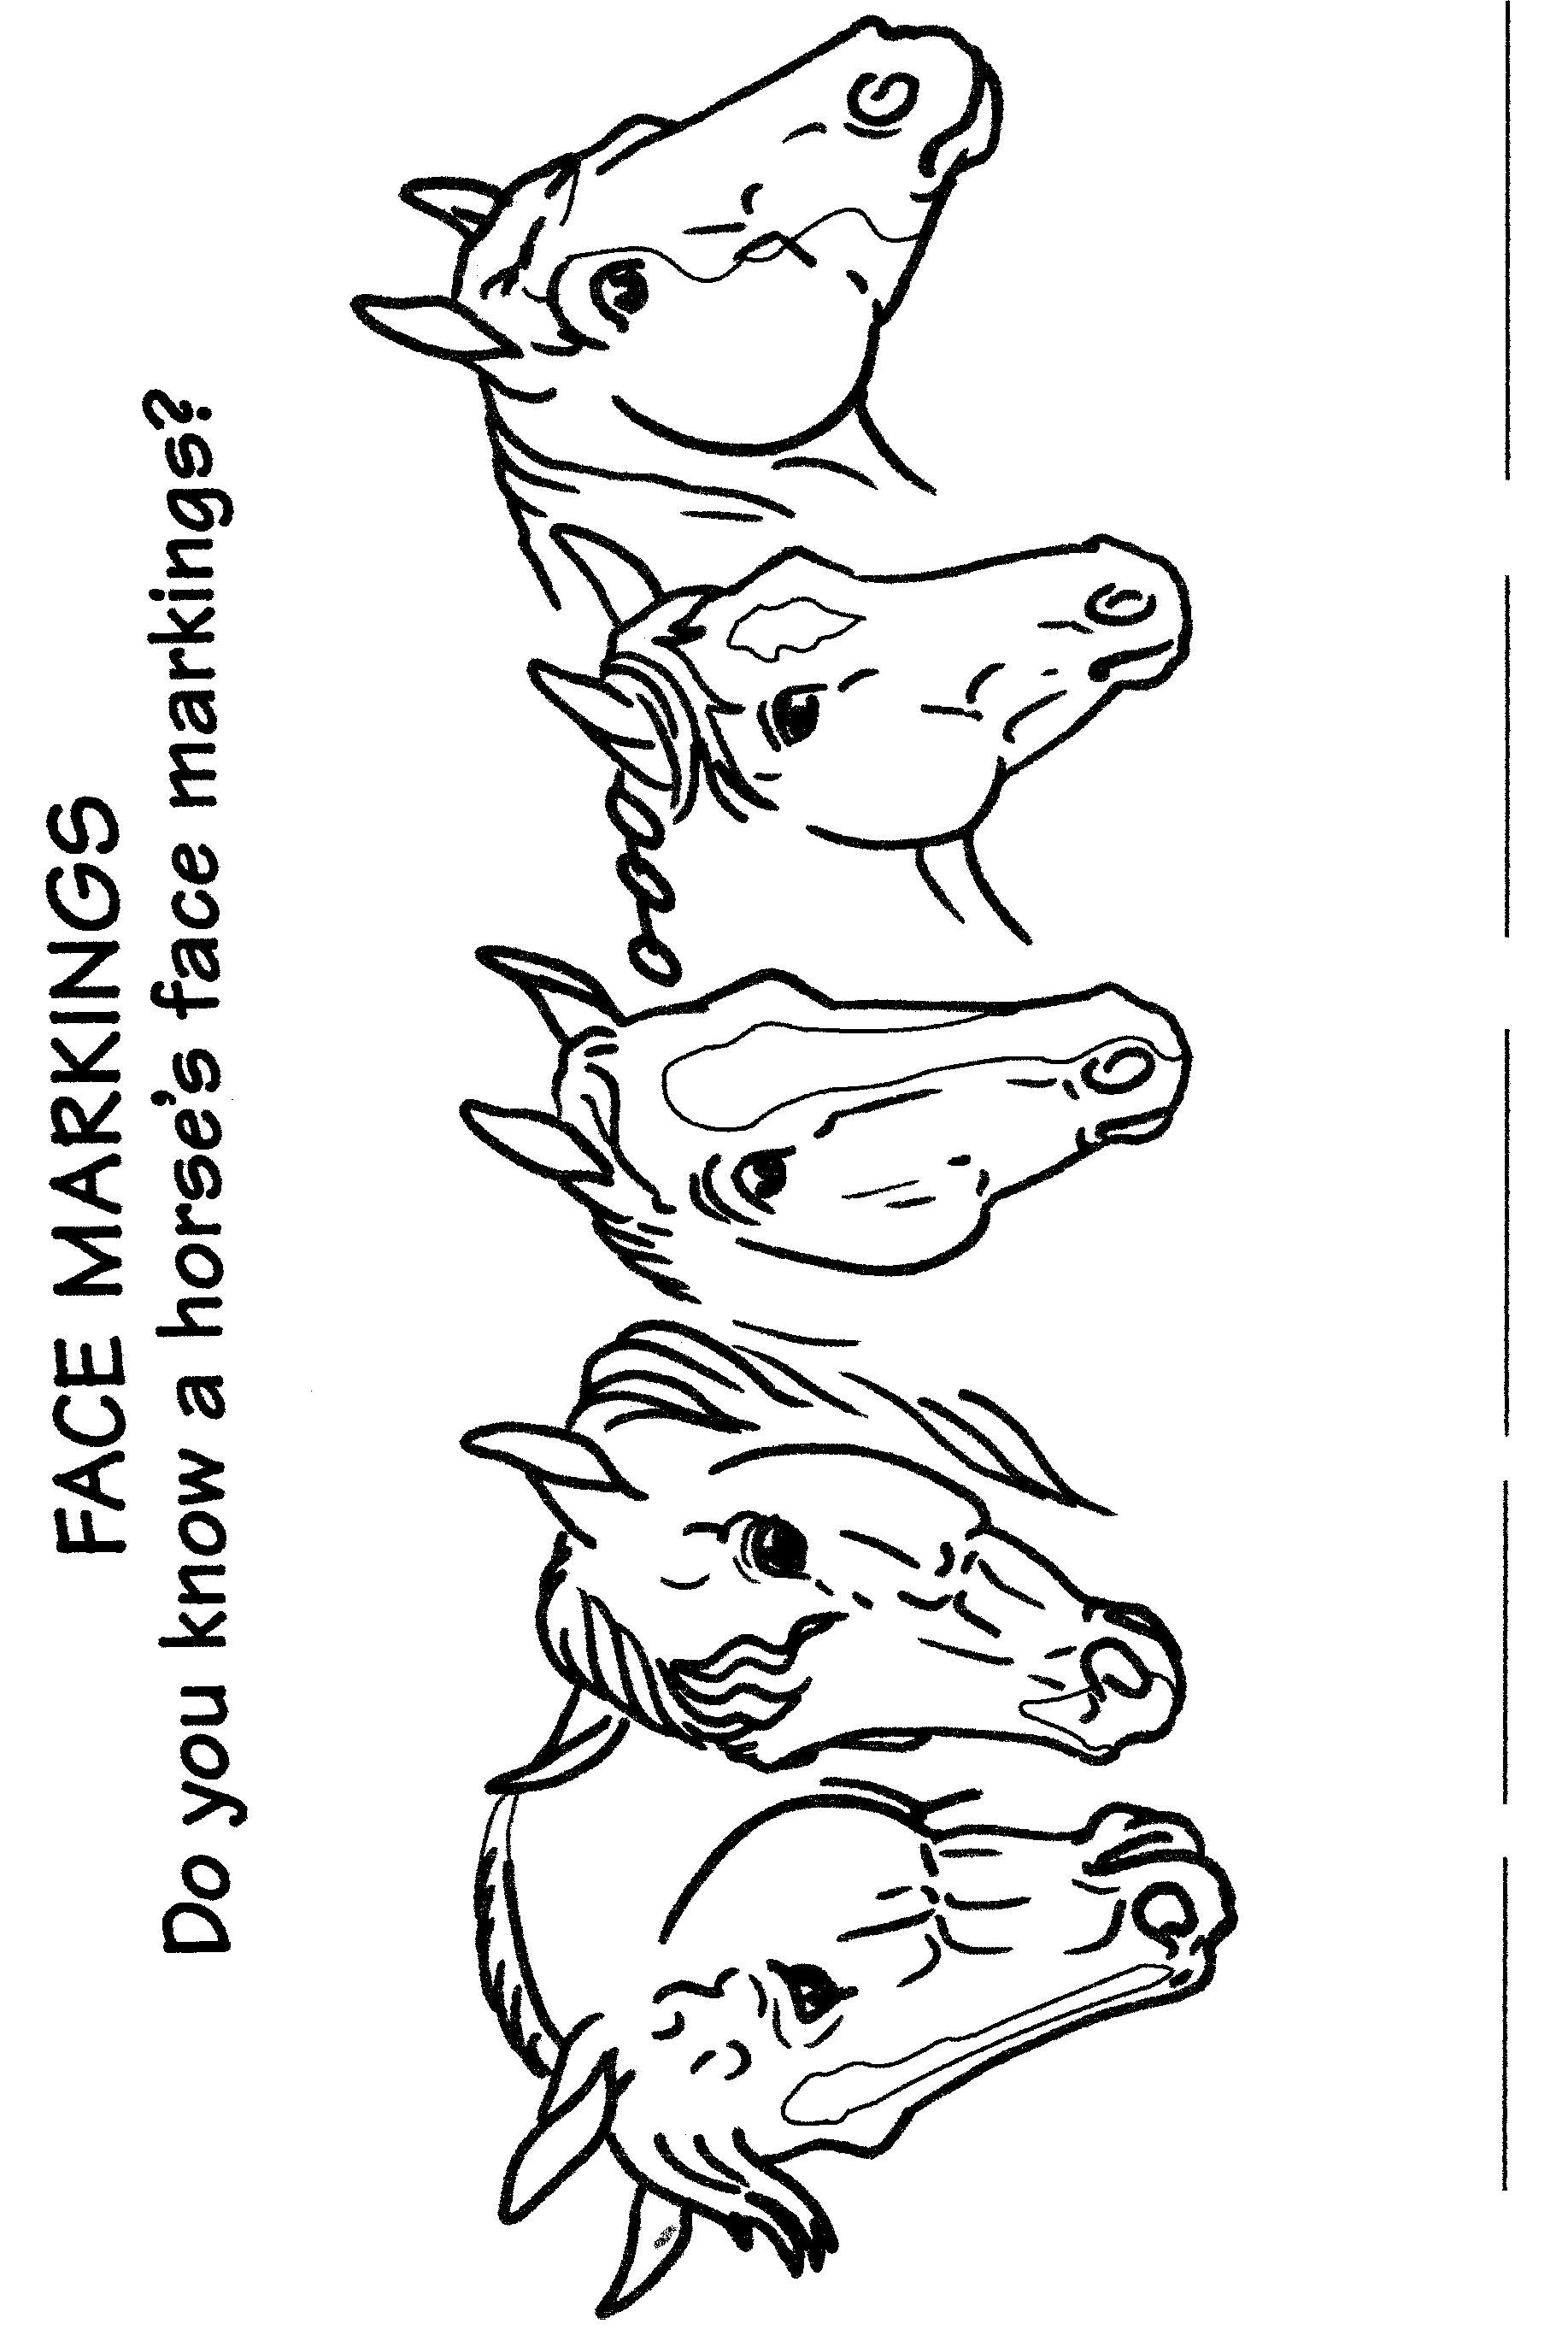 worksheet Horse Anatomy Worksheet face markings fill in the blank hand out horse factshorse anatomyriding